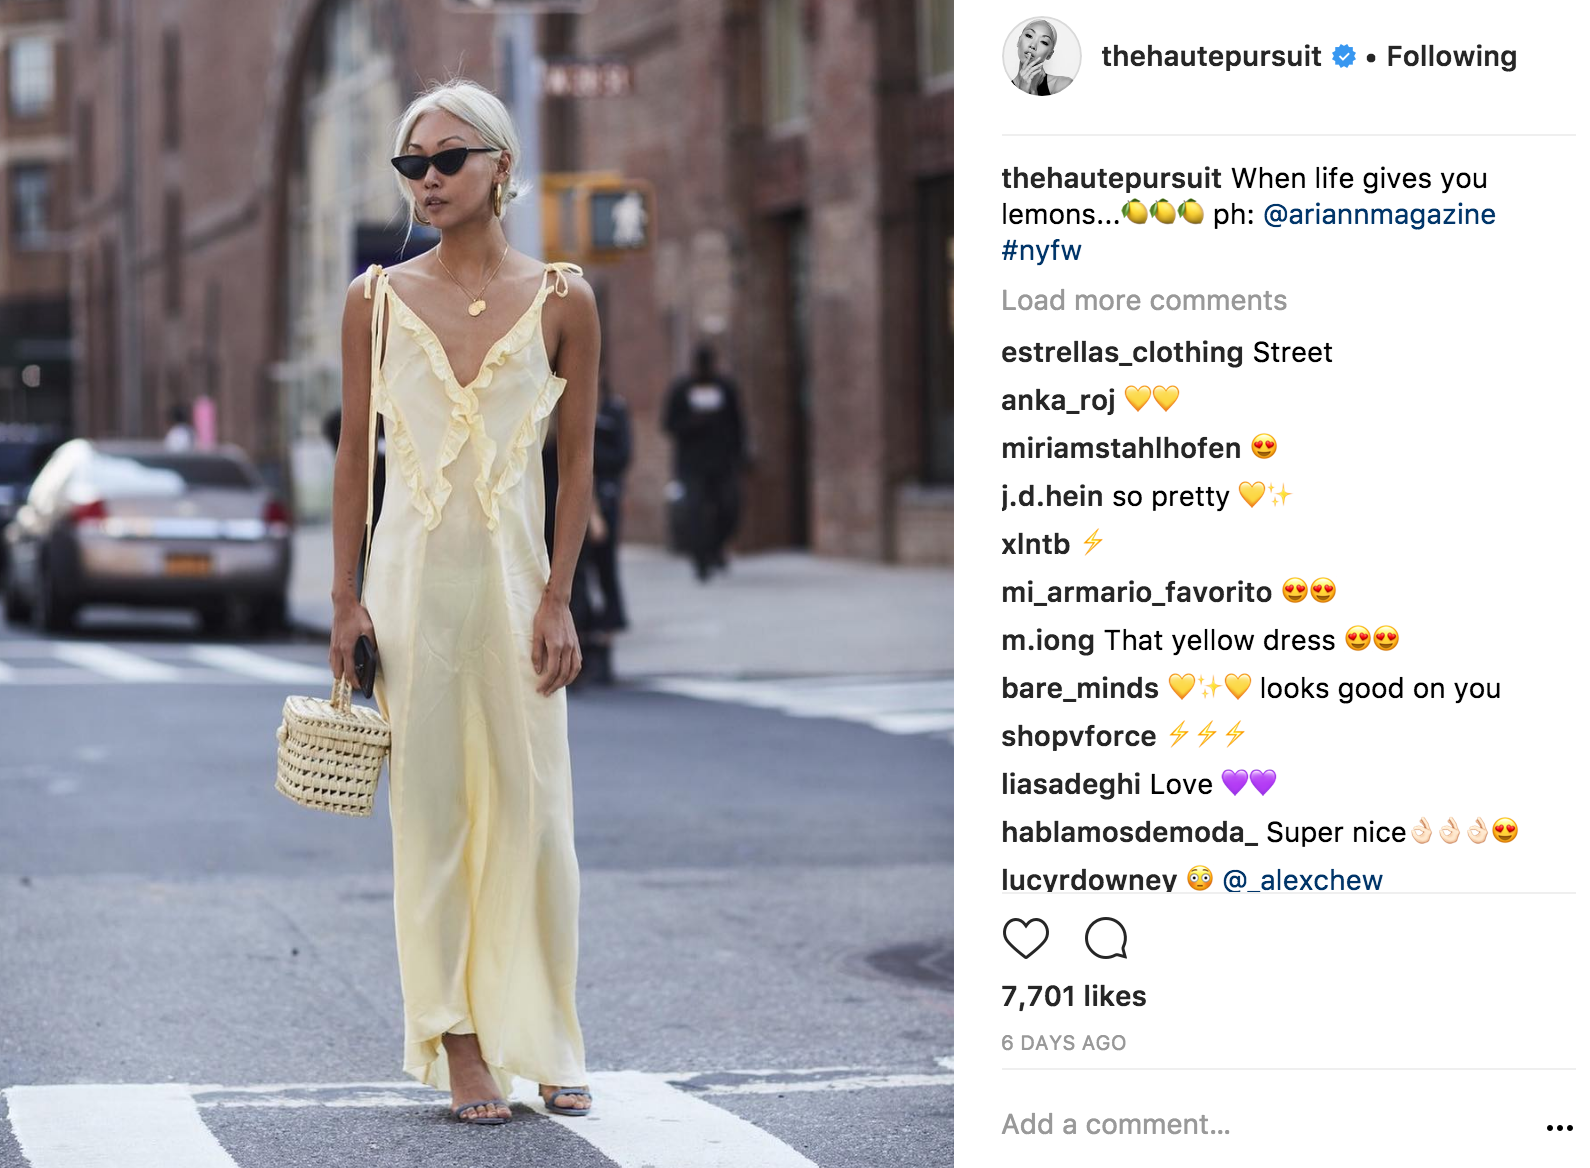 The Haute Pursuit instagram